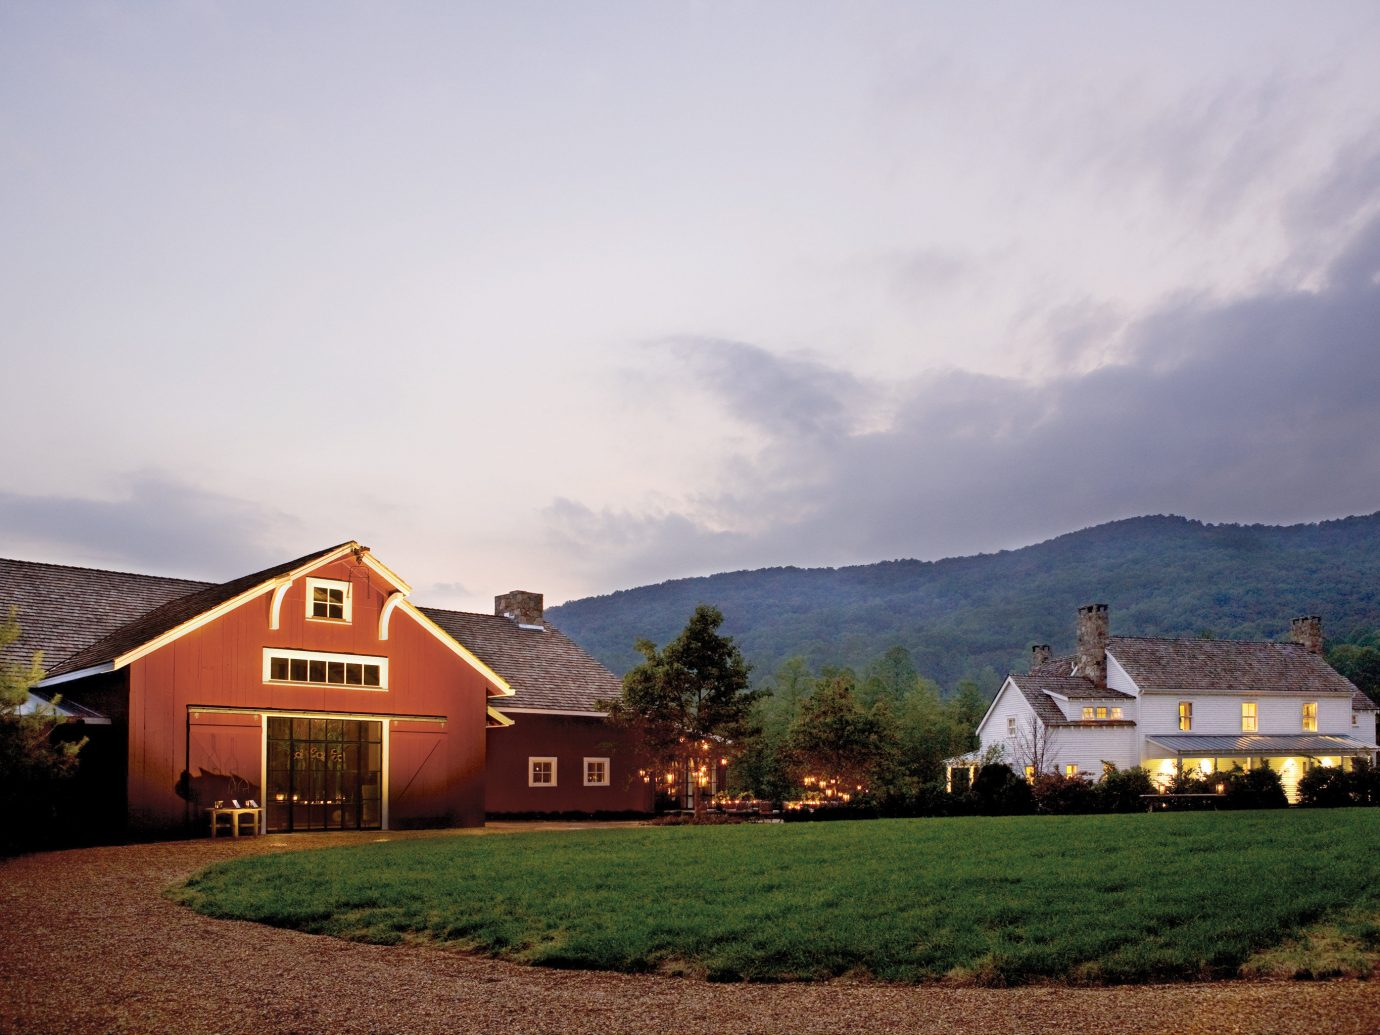 All-Inclusive Resorts Classic Country Grounds Hotels Luxury Romance Scenic views Trip Ideas sky outdoor grass mountain house building estate rural area cloud hill morning farm building landscape mountain range home Farm evening barn hillside